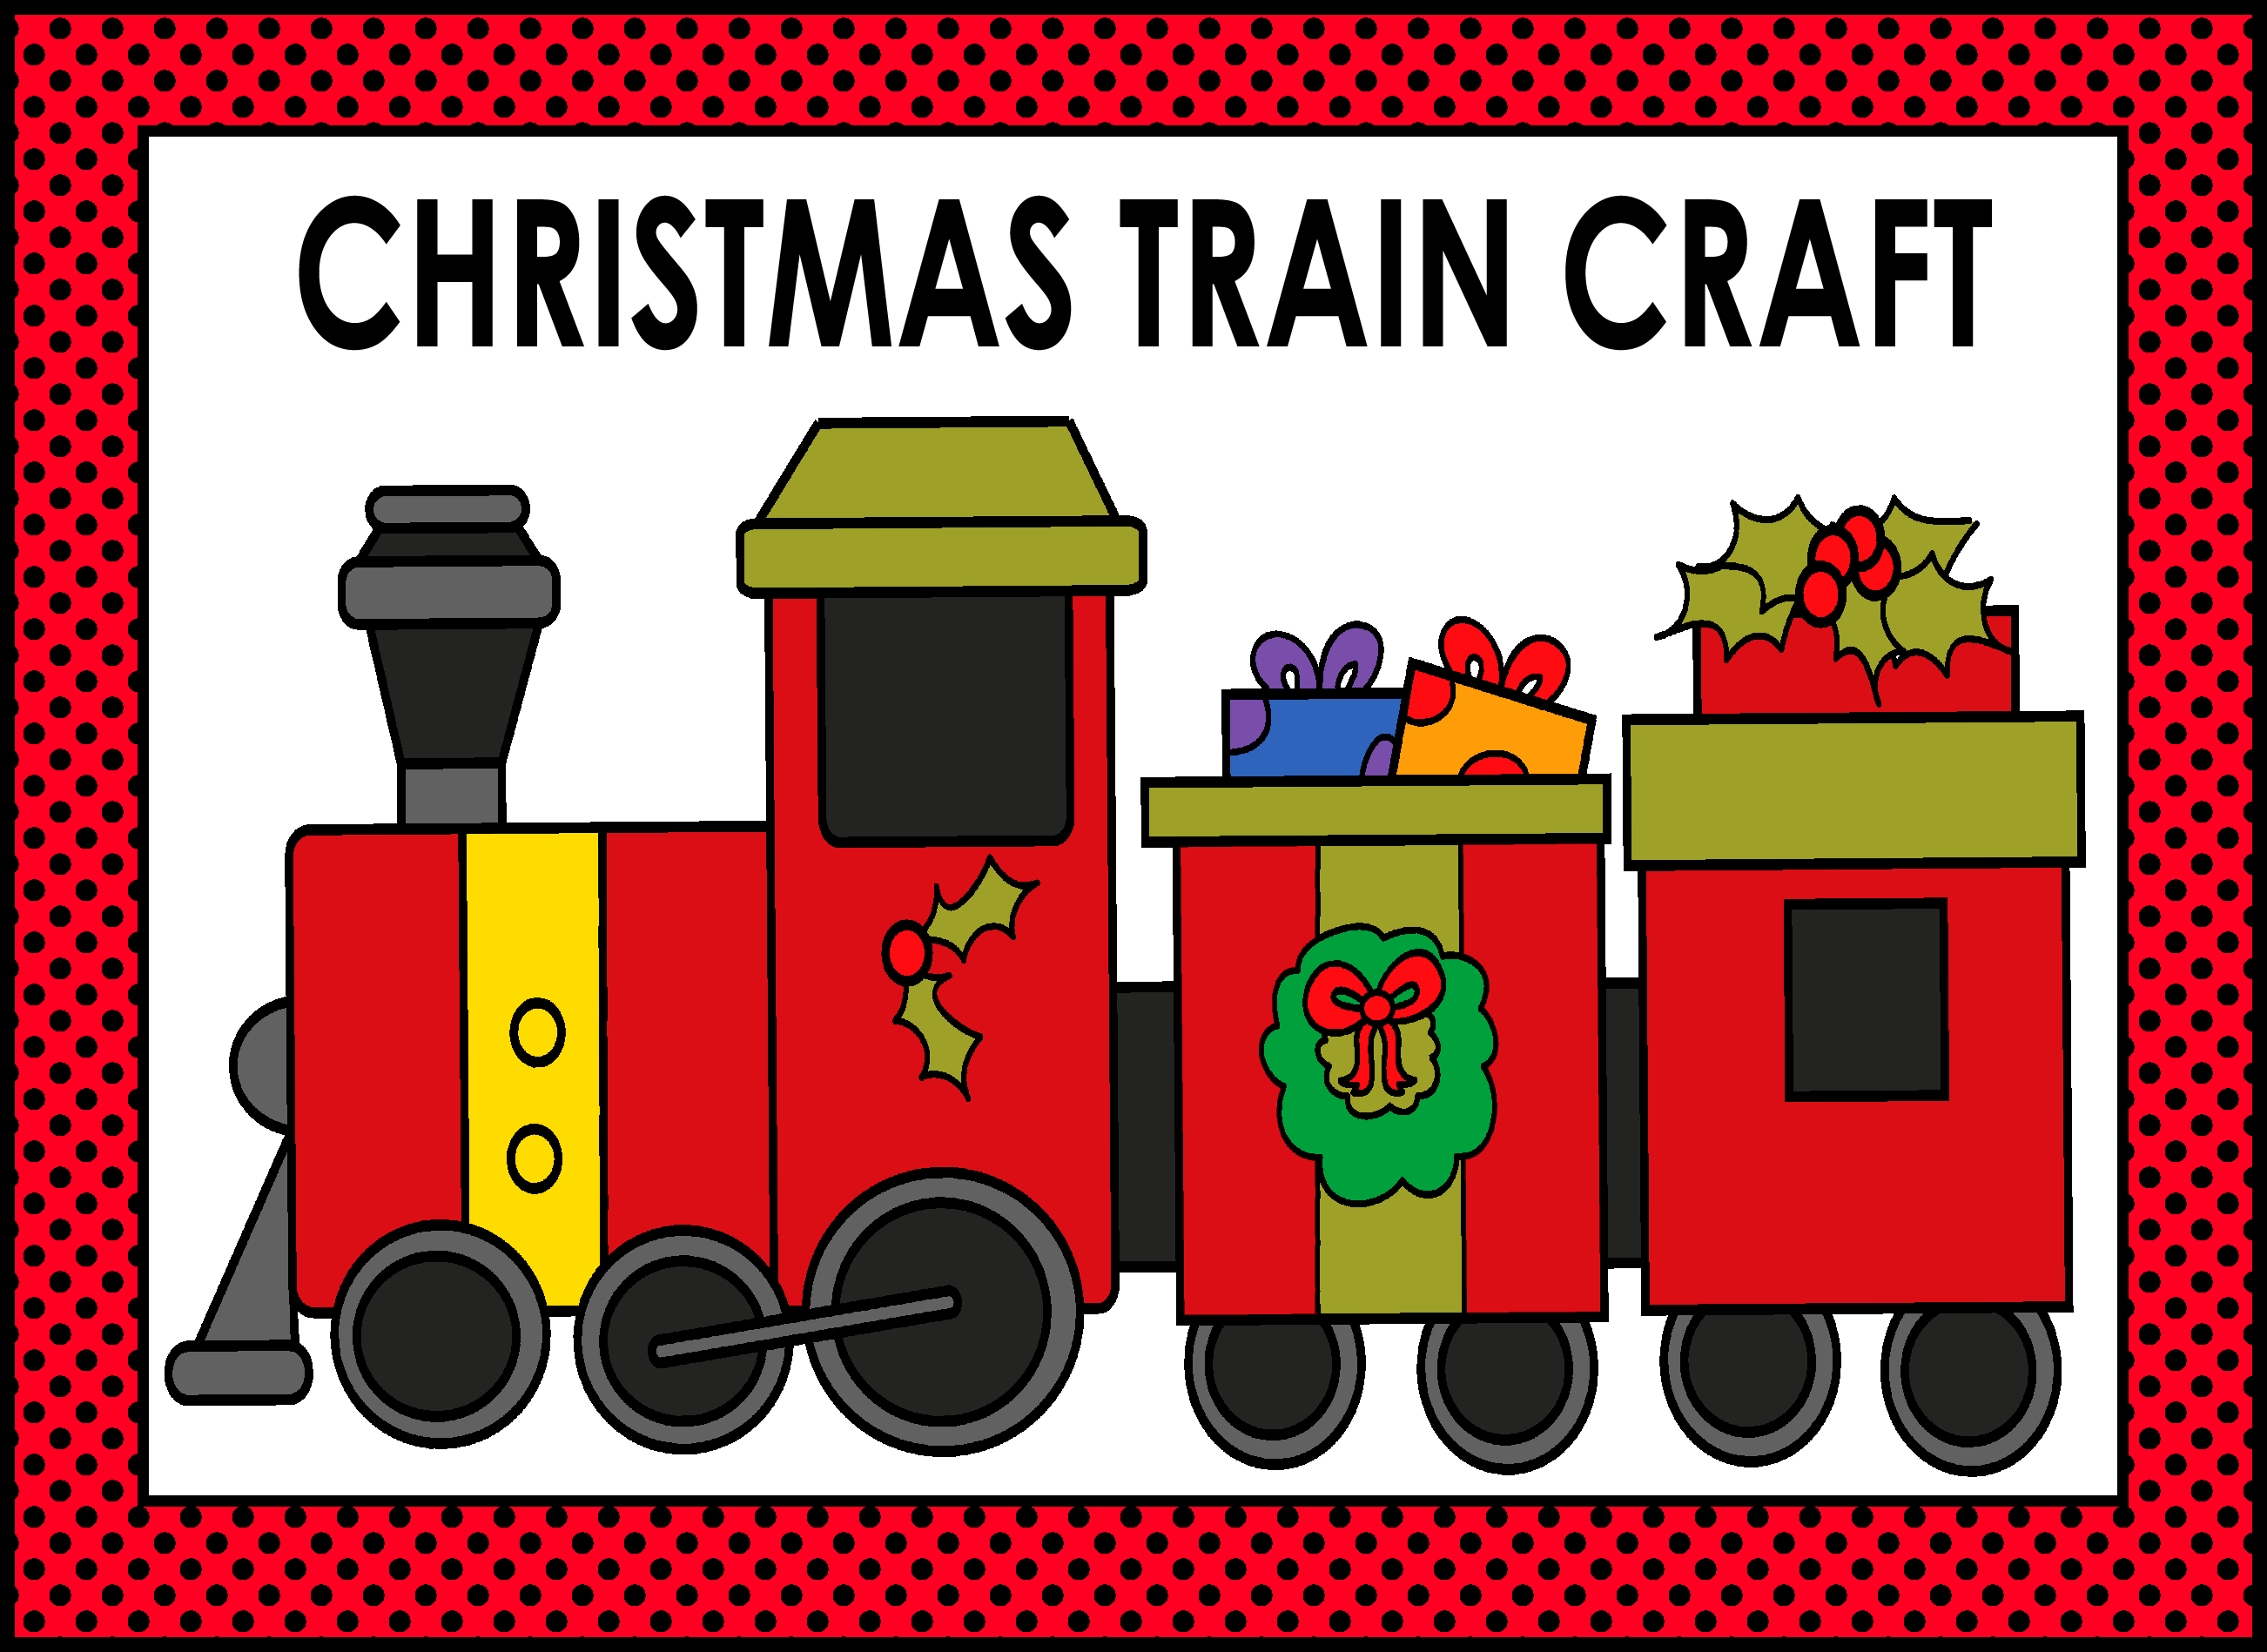 medium resolution of christmas train craft children can color cut and assemble the christmas train craft